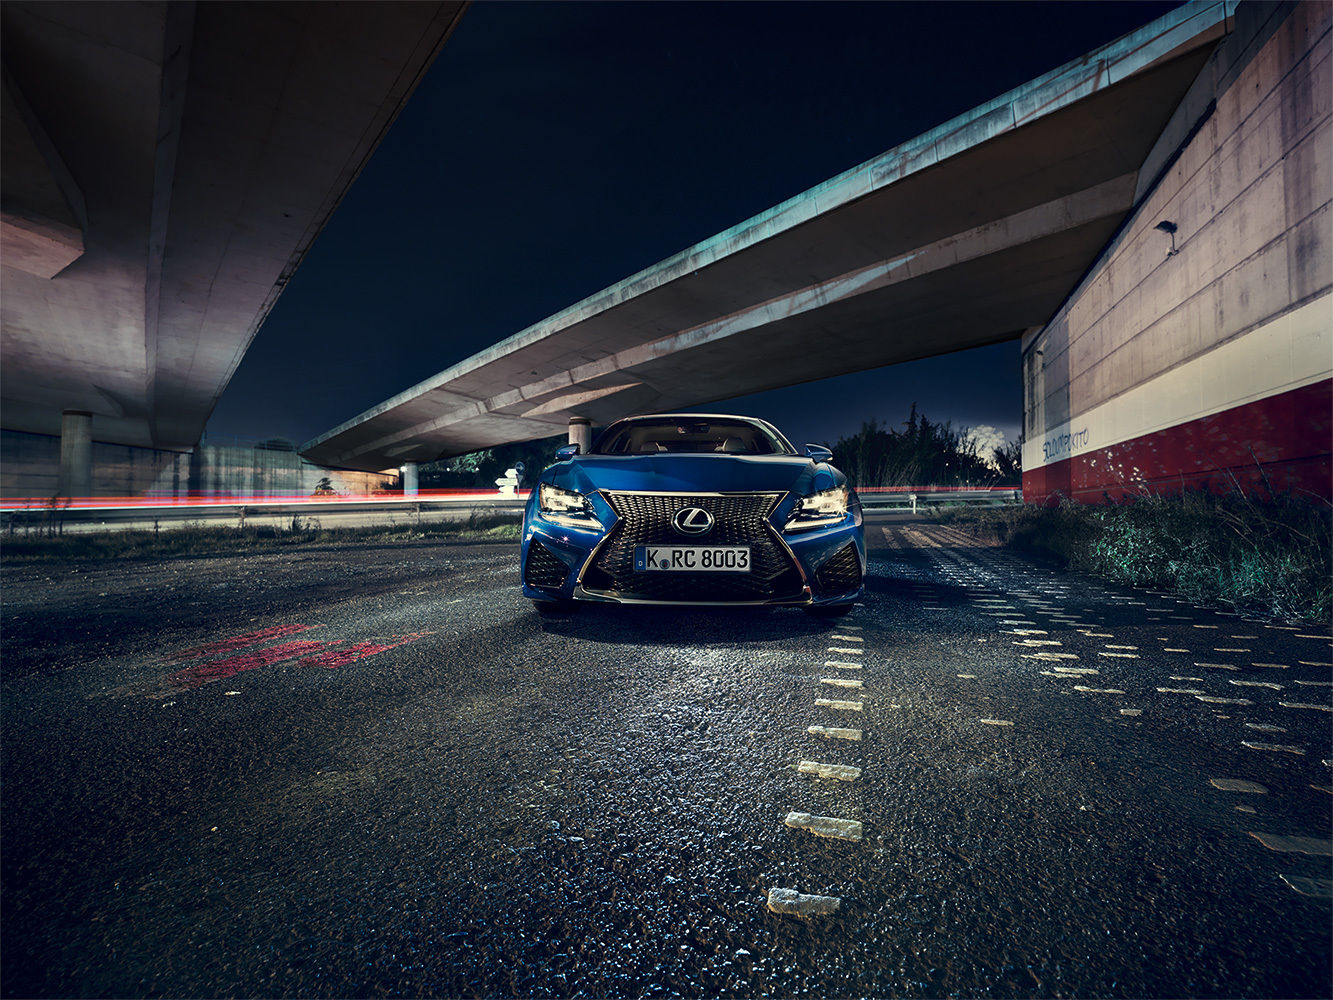 ANKE LUCKMANN for GQ GERMANY LEXUS RCF